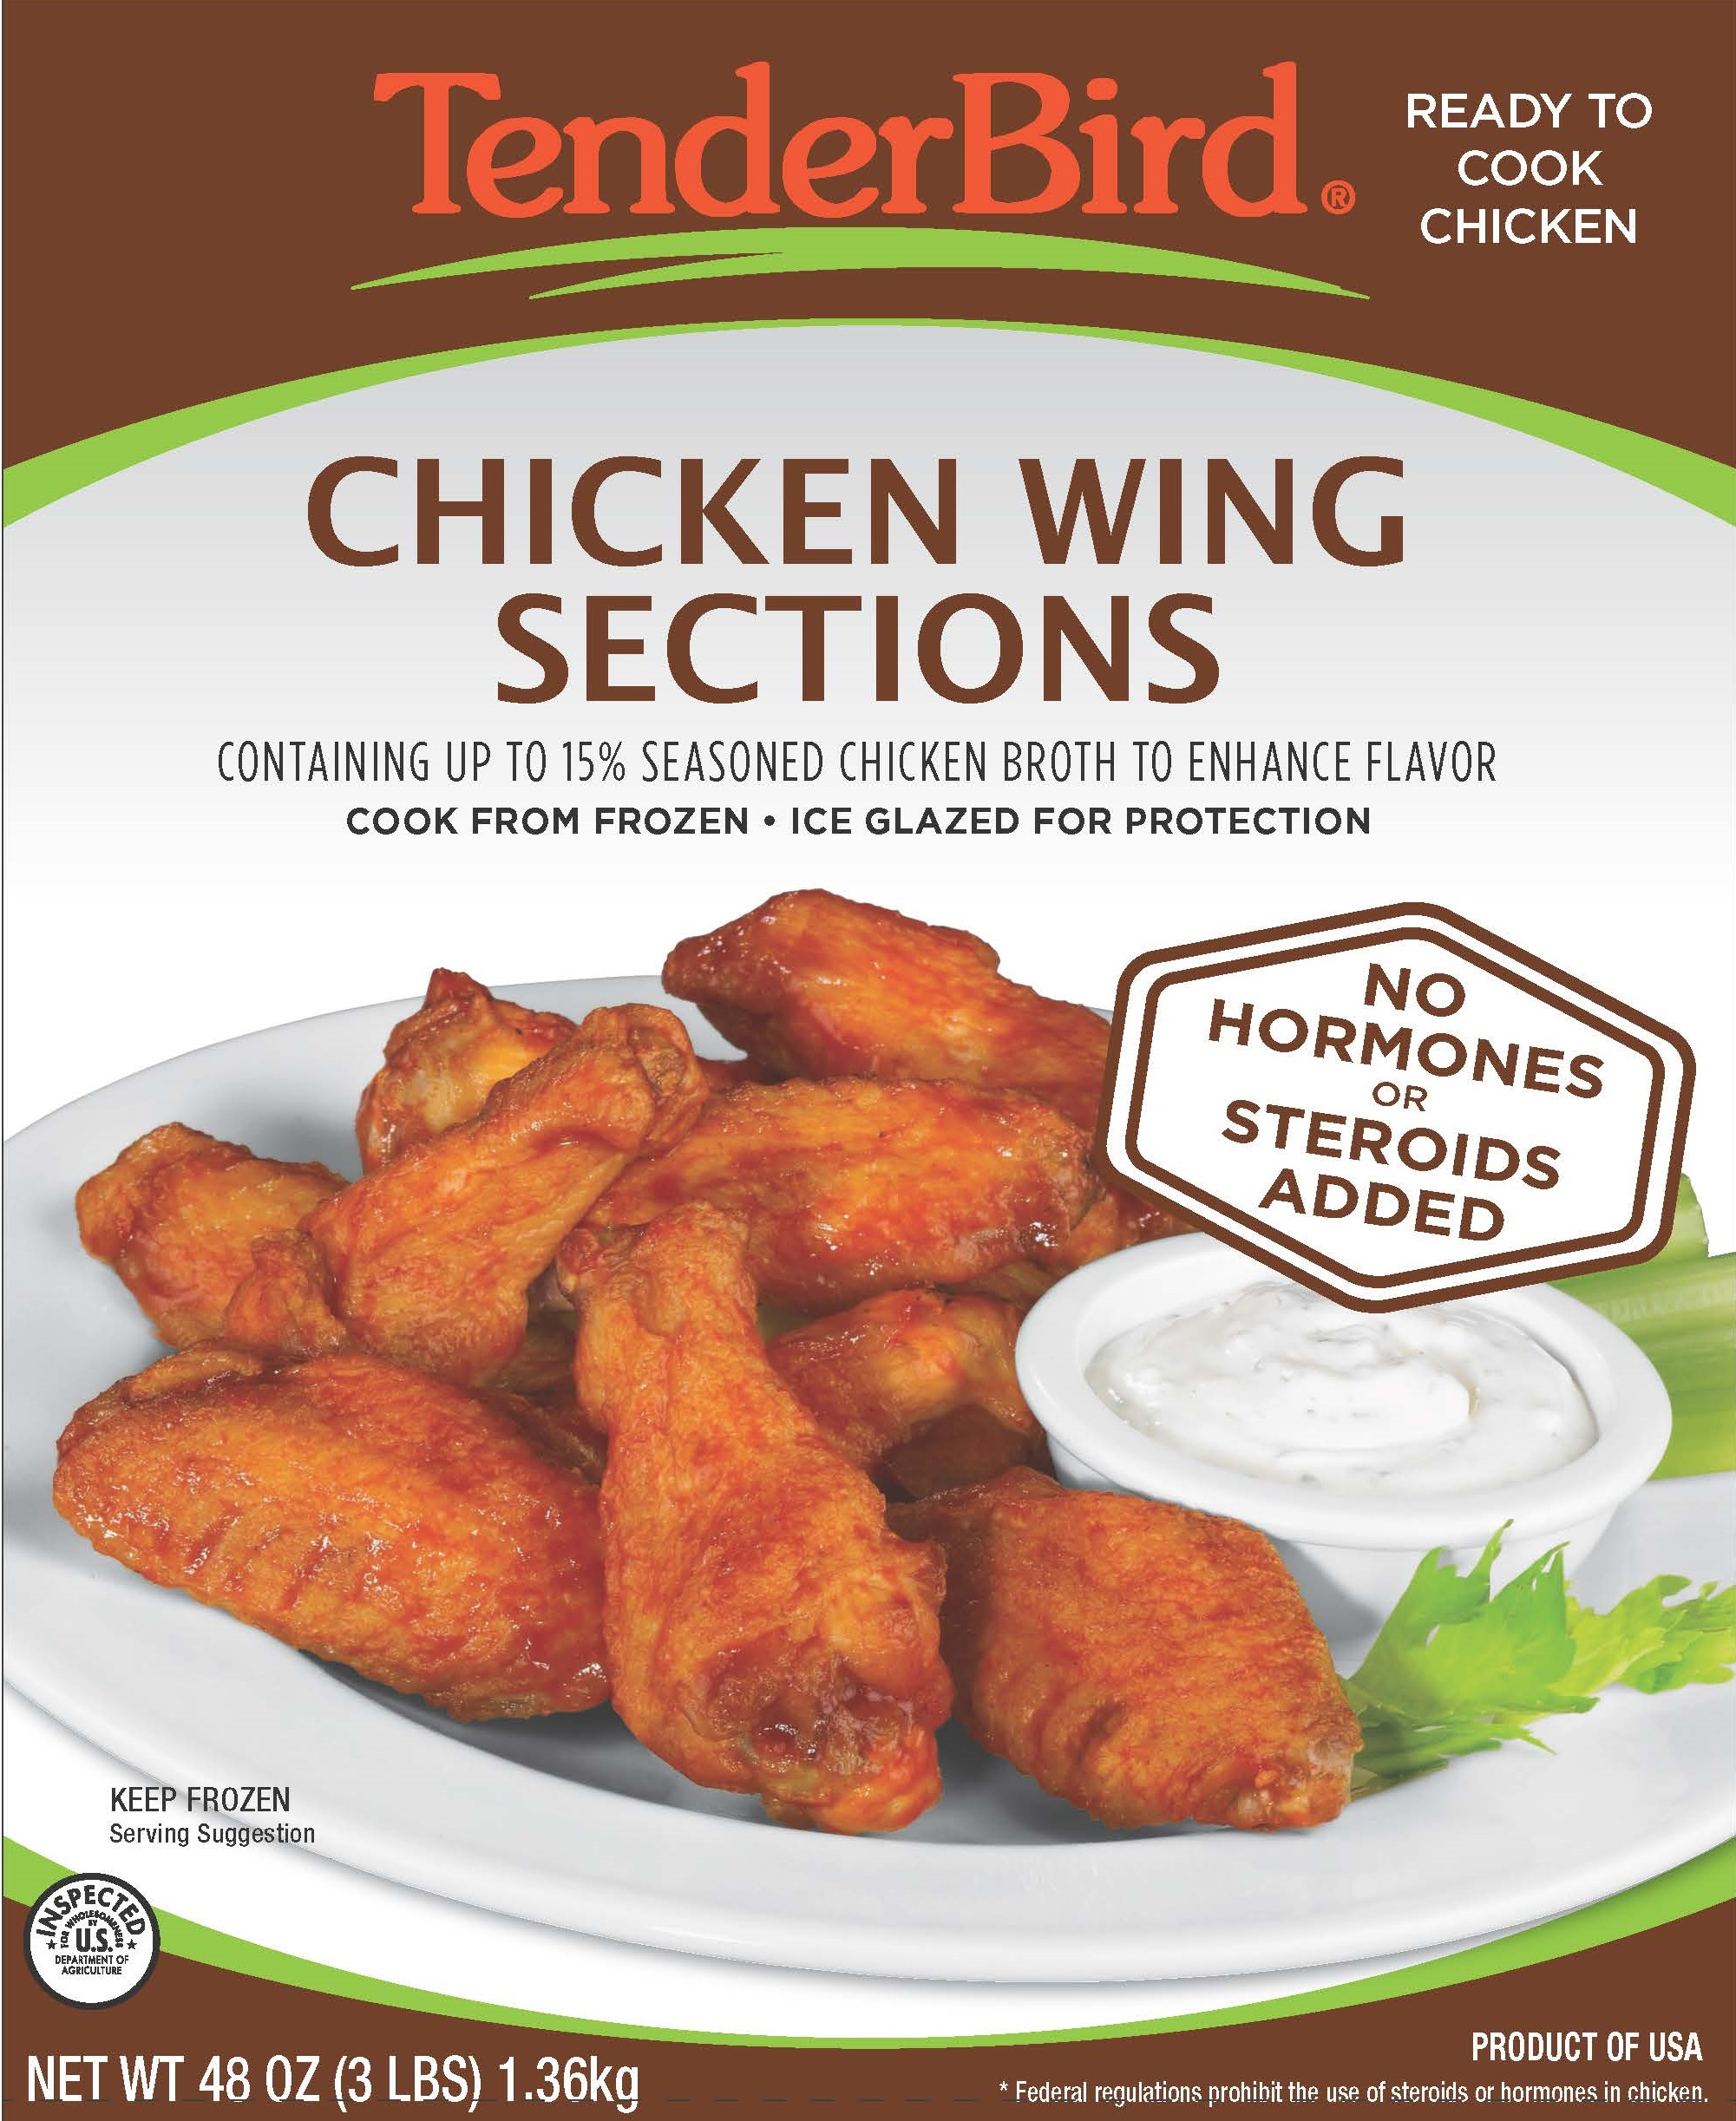 232154-ChickenWingSections